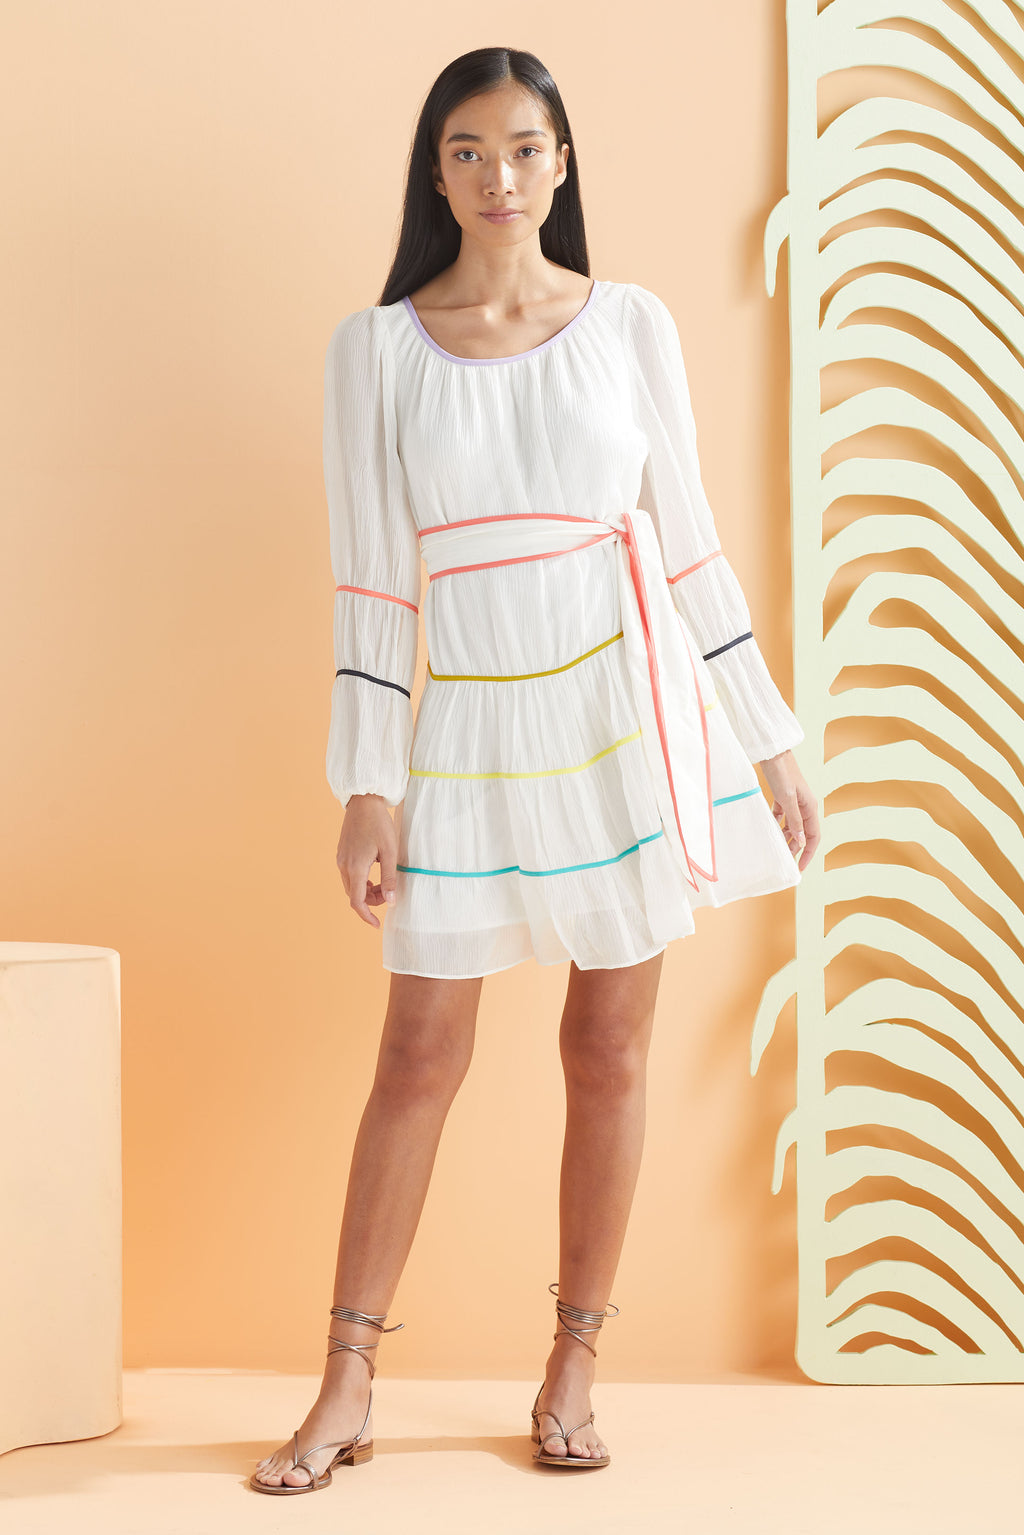 white longsleeve dress with multicolor piping details along tiers